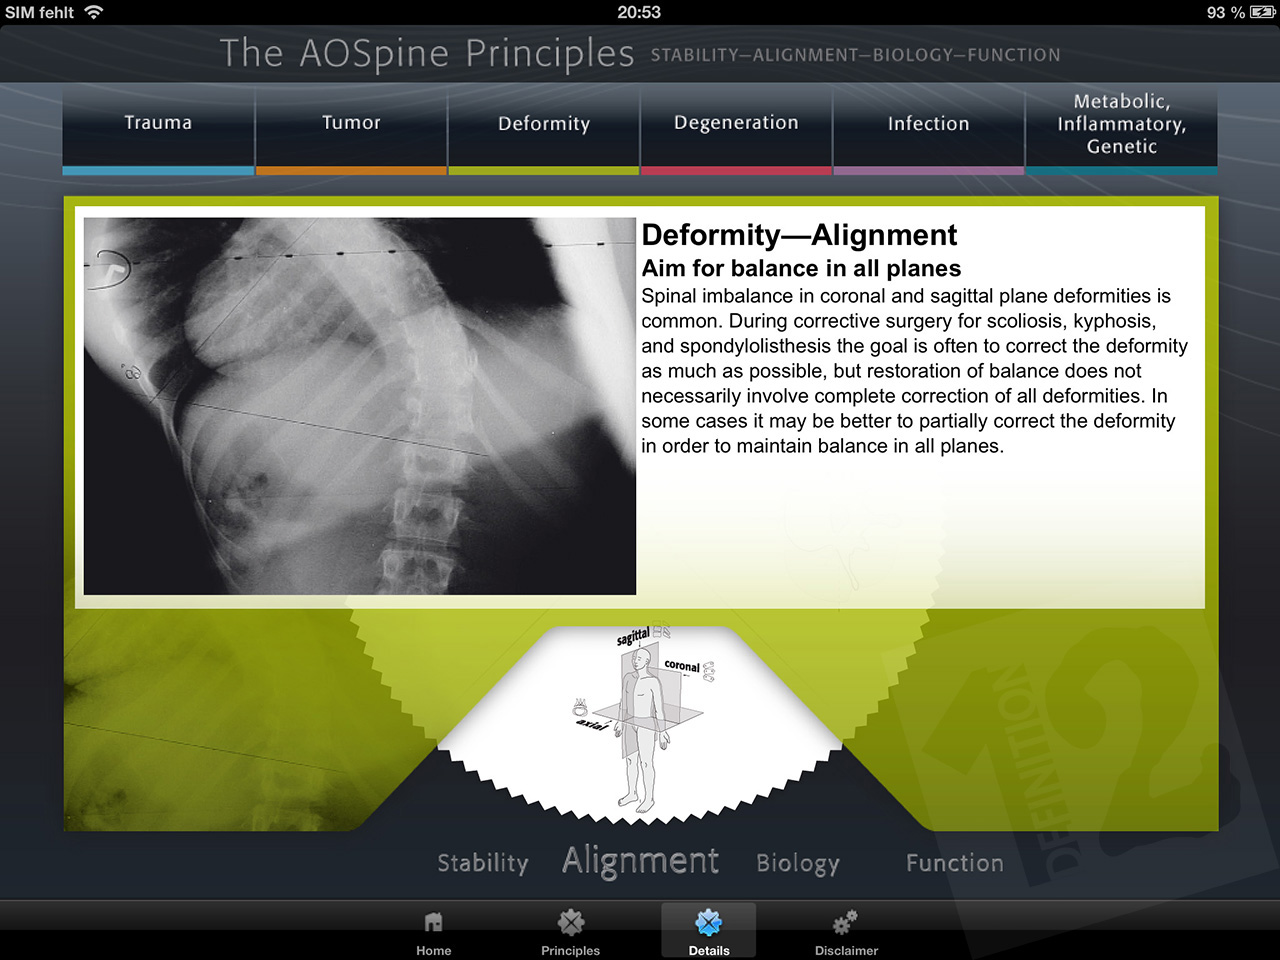 Definition12 - Software - Mobile - Aospine